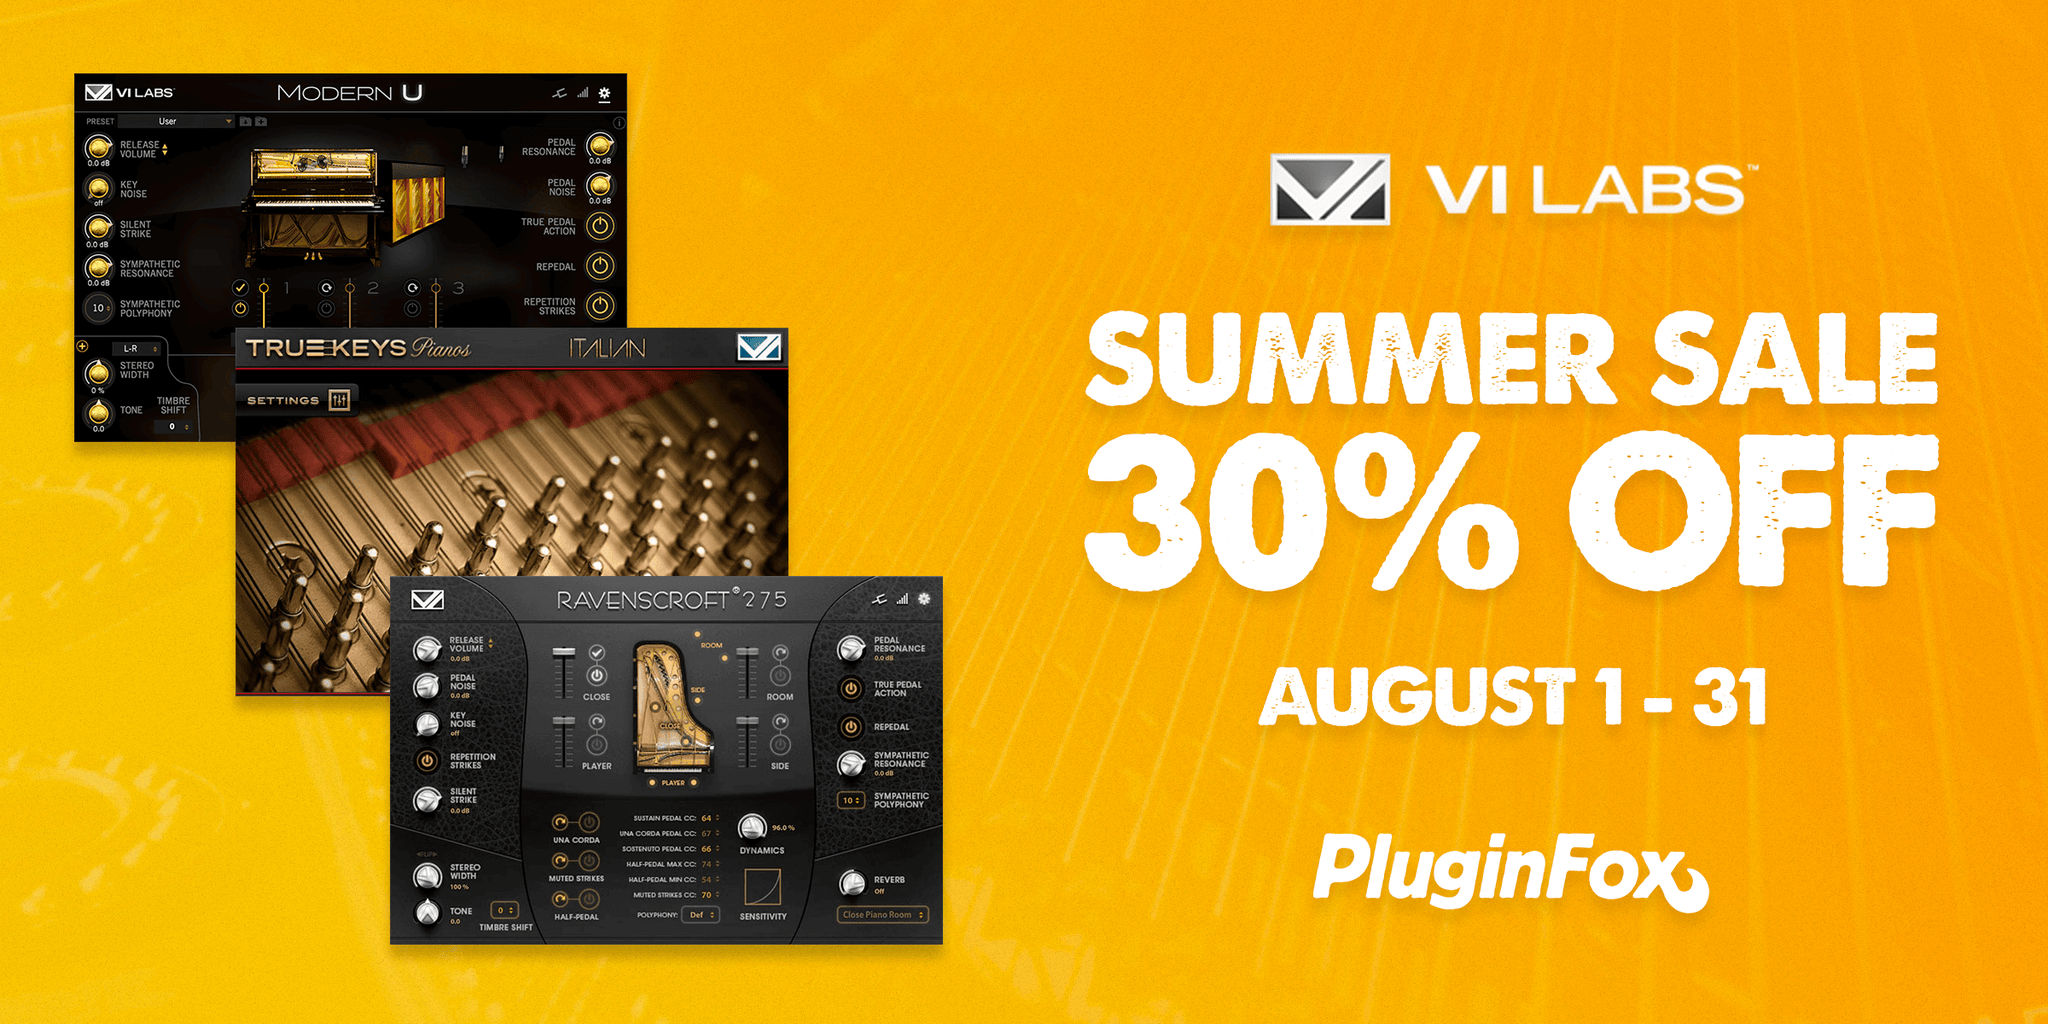 VI Labs Summer Sale - Aug 1-31